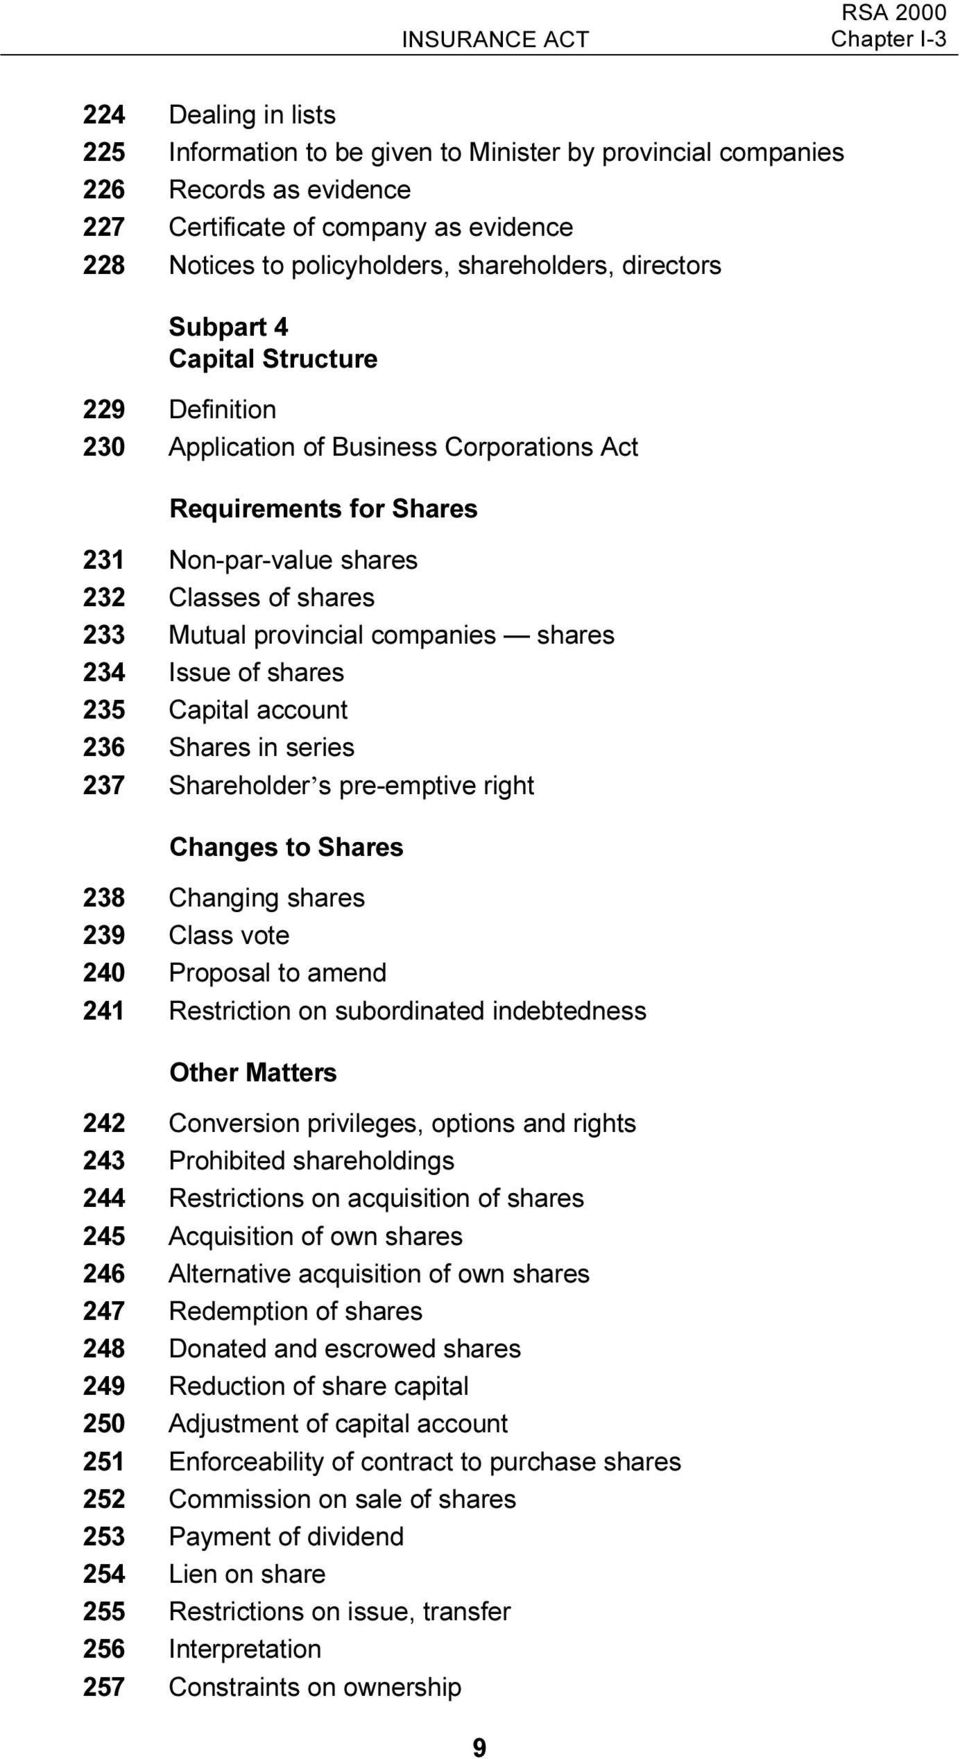 233 Mutual provincial companies shares 234 Issue of shares 235 Capital account 236 Shares in series 237 Shareholder s pre-emptive right Changes to Shares 238 Changing shares 239 Class vote 240